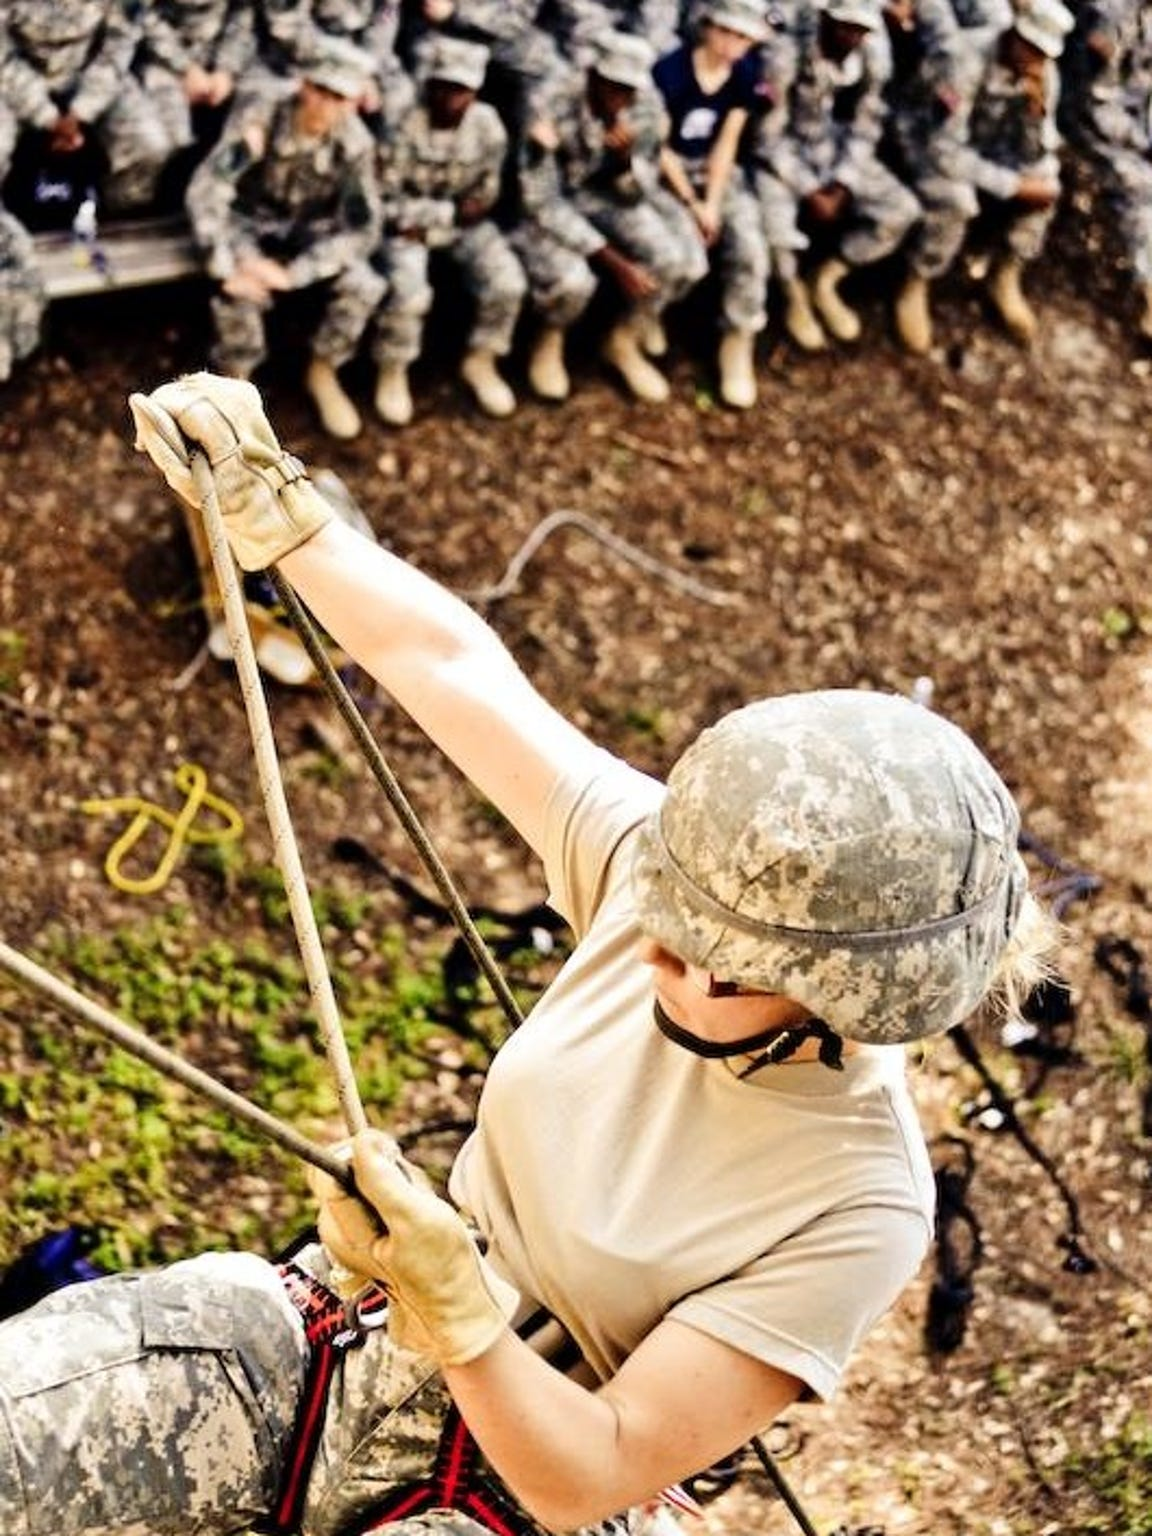 Jordan Allen during a rappelling class in 2013.